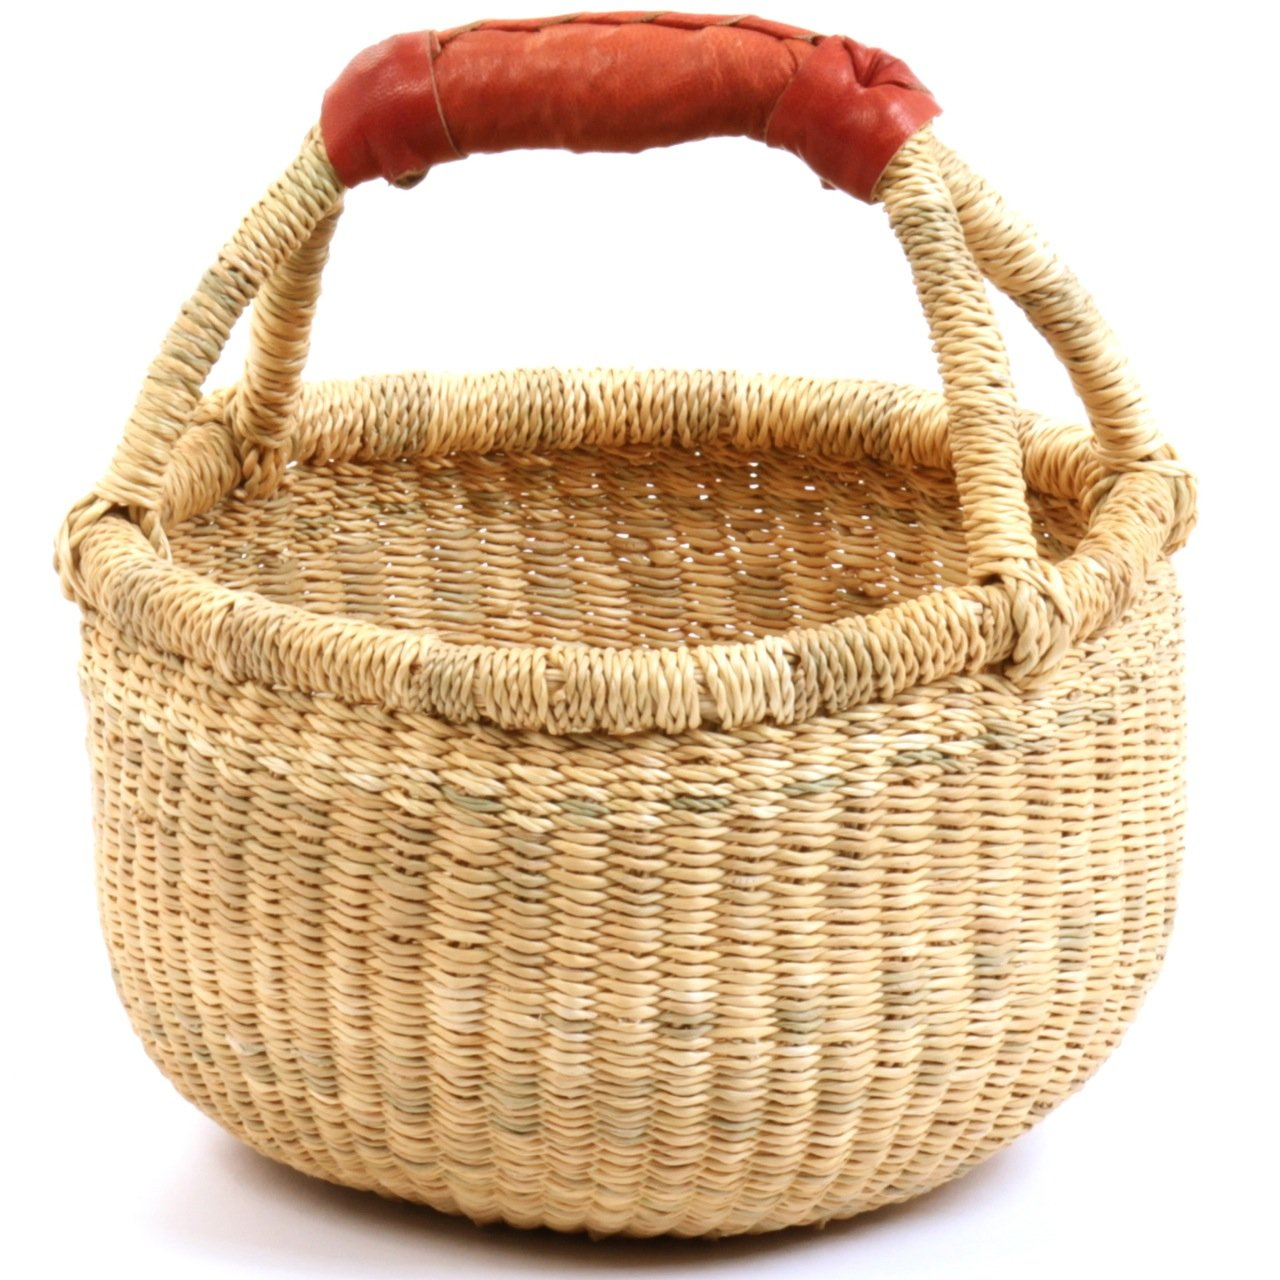 Fair Trade Dye-Free Fully Shaped Mini Market Basket 7-9'' Across, 20122, Made in Bolga, Ghana, West Africa Exclusively for: Fair Trade Gifts and Home Decor by Baskets of Africa